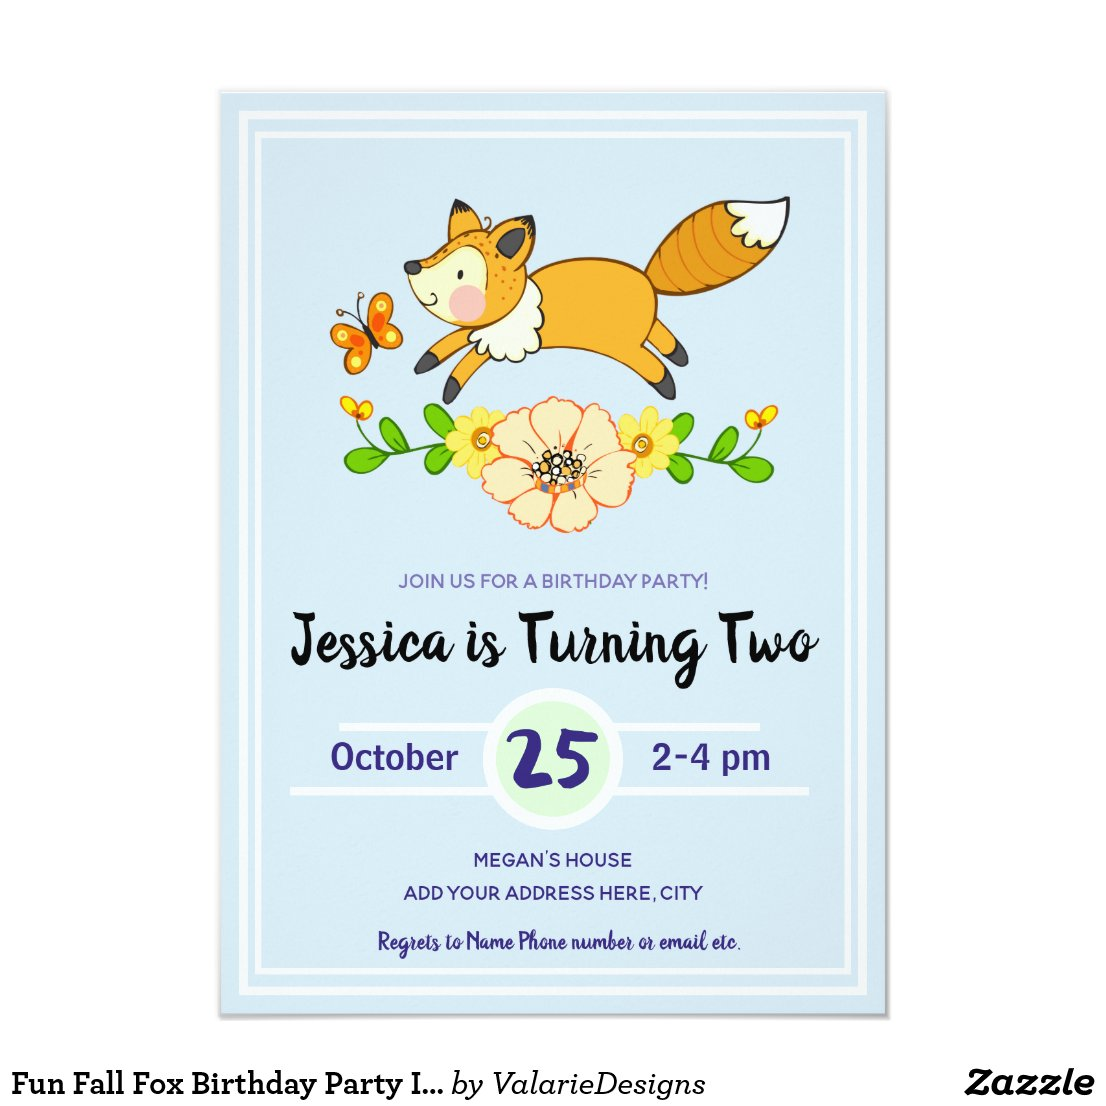 Fun Fall Fox Birthday Party Invitations